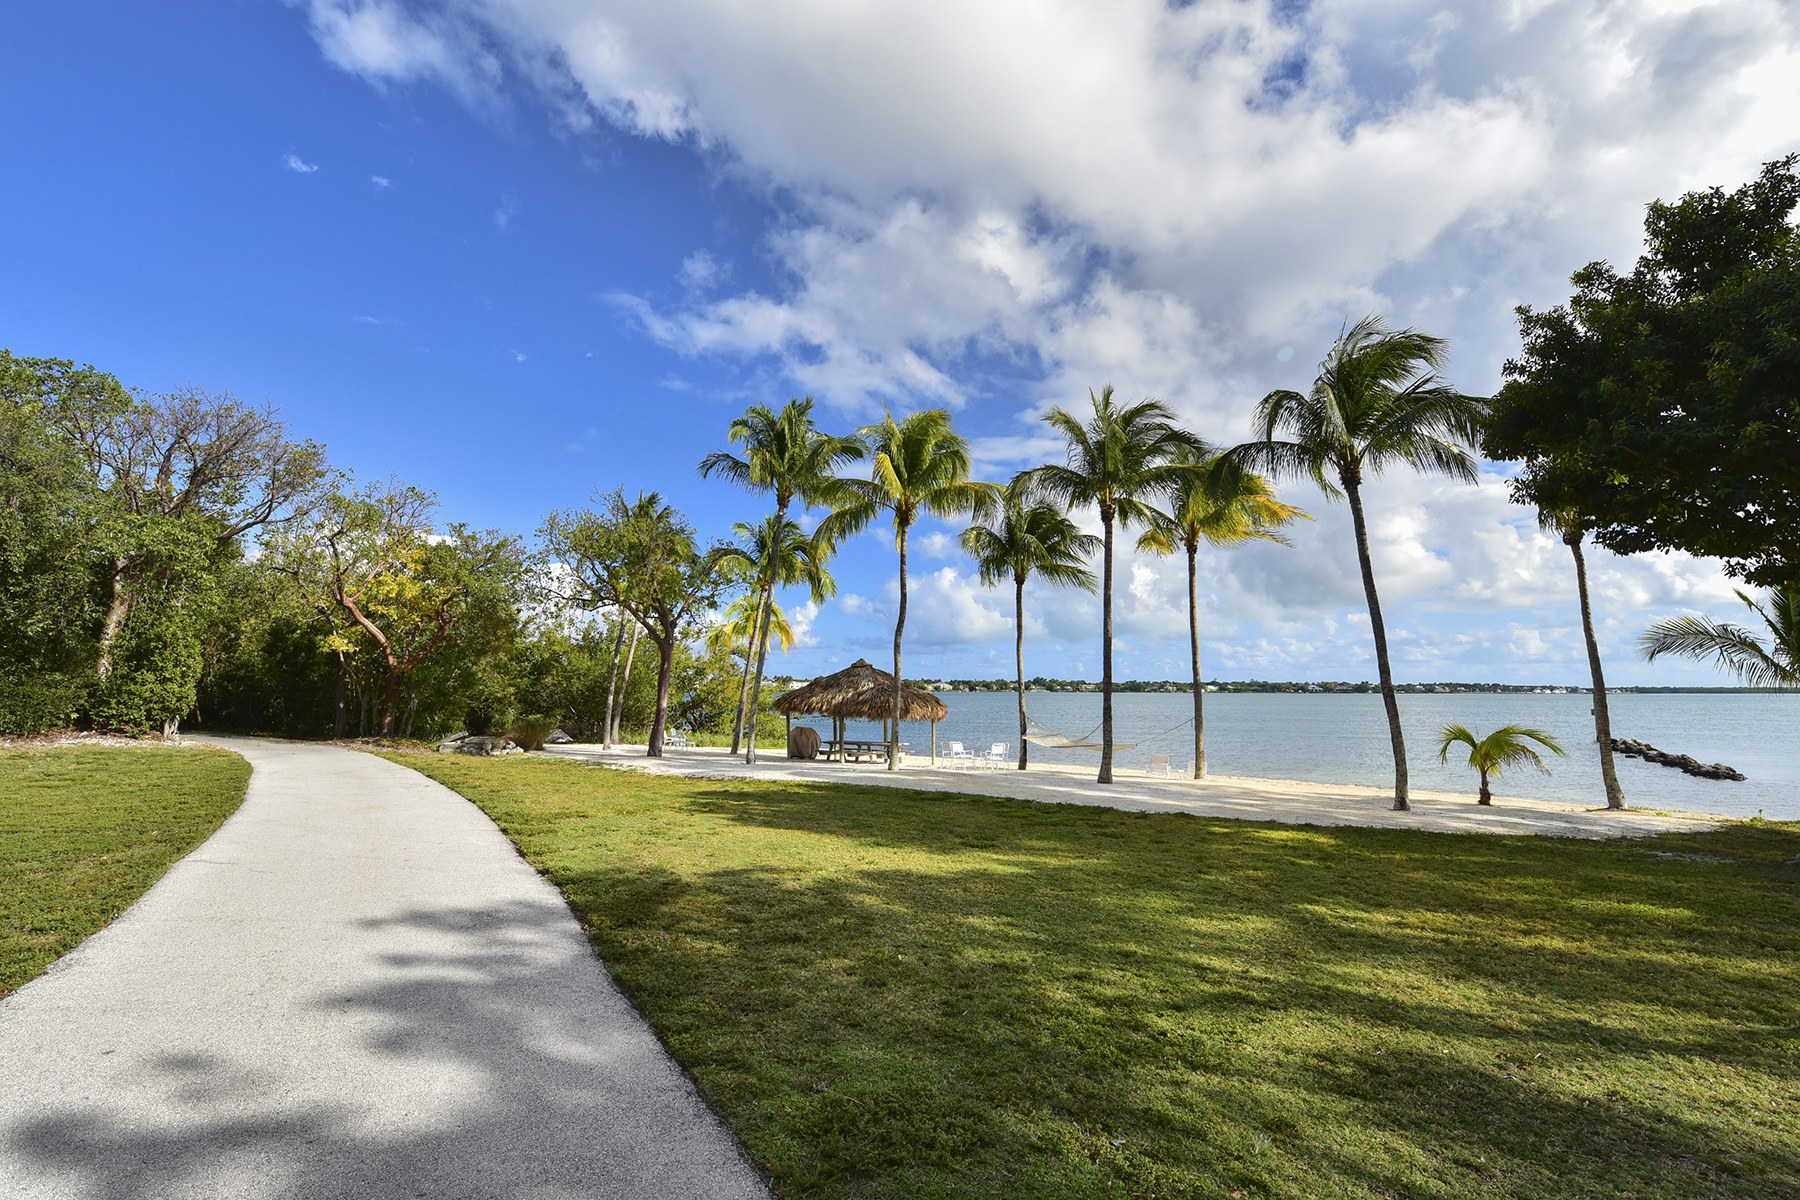 Additional photo for property listing at Pumpkin Key - Private Island, Key Largo, FL Pumpkin Key - Private Island Key Largo, Florida 33037 Estados Unidos